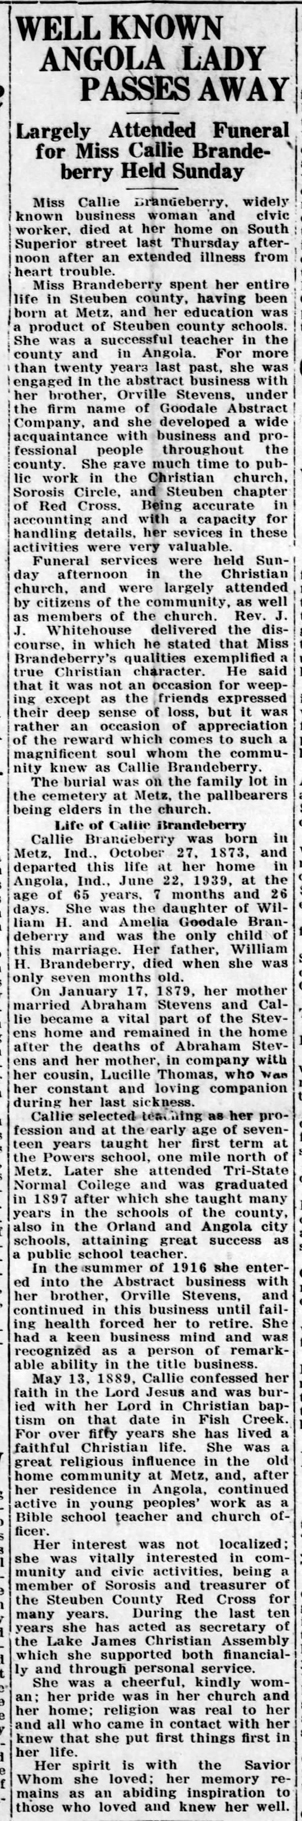 1939 Jun 30 BRANDEBERRY Callie OBIT Angola Herald IN